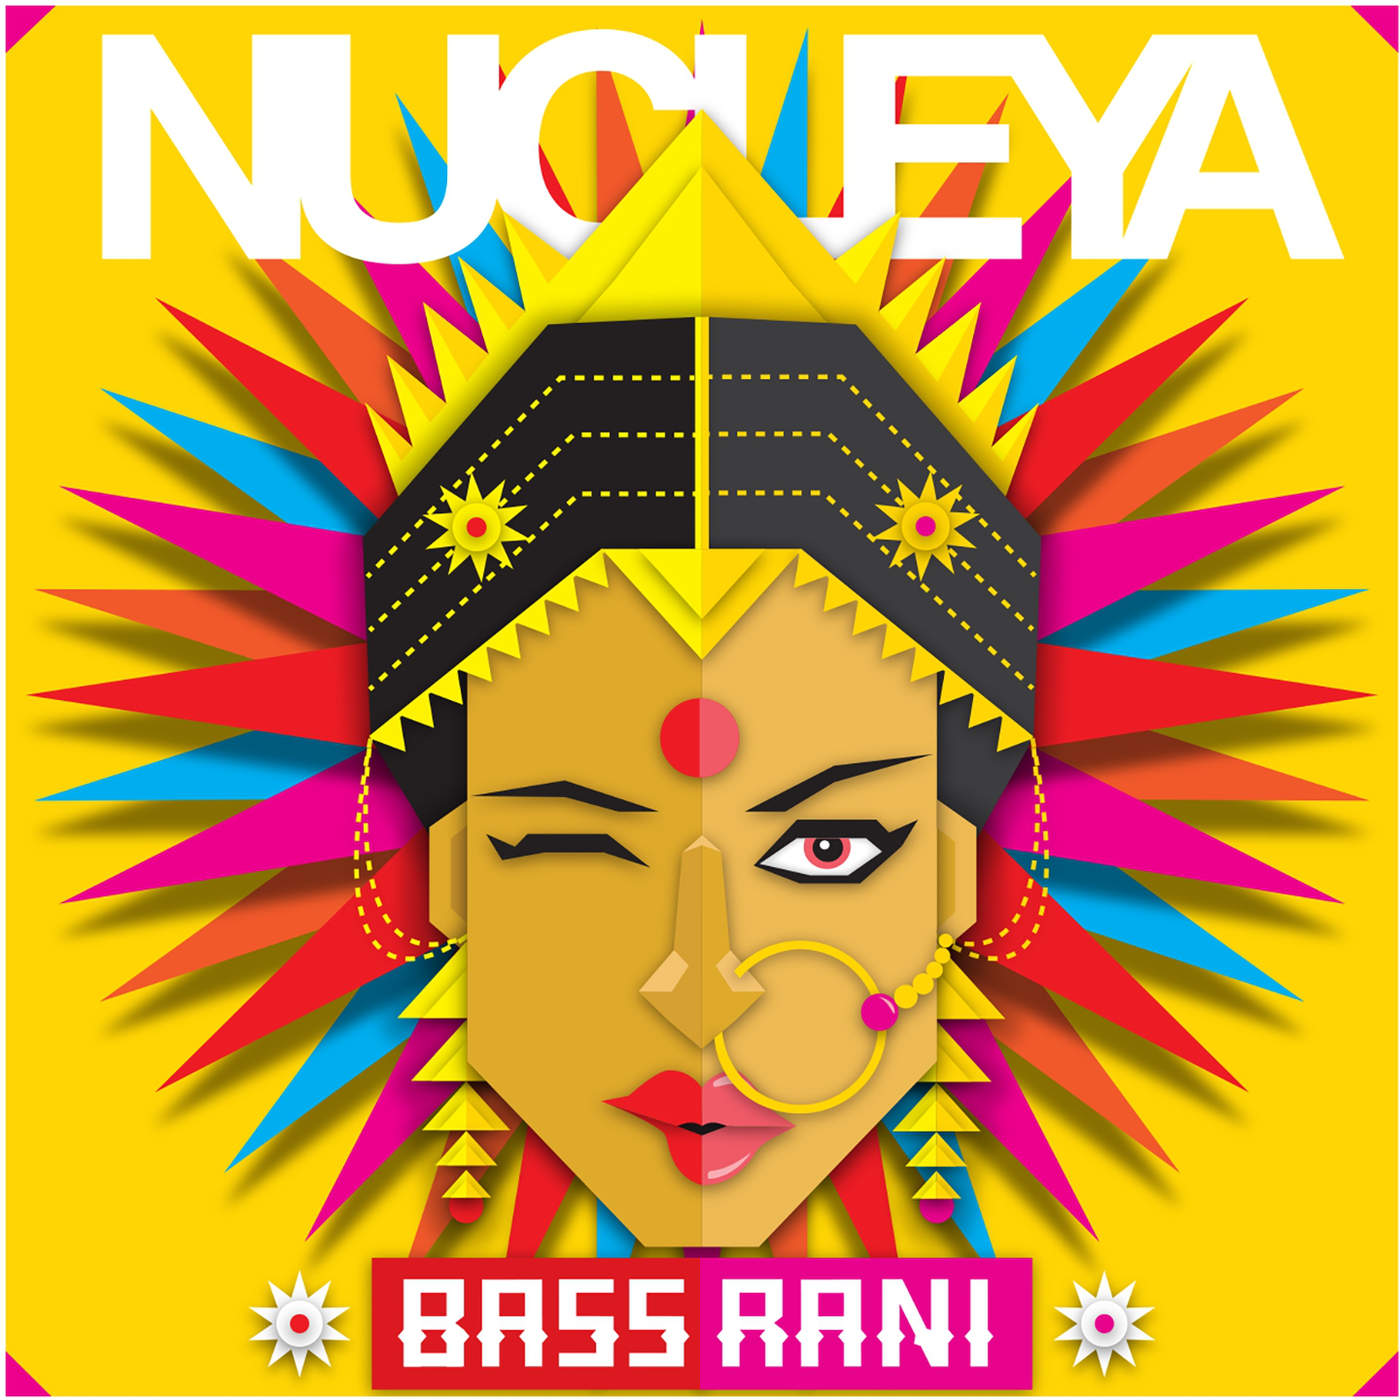 Nucleya - Bass Rani Cover